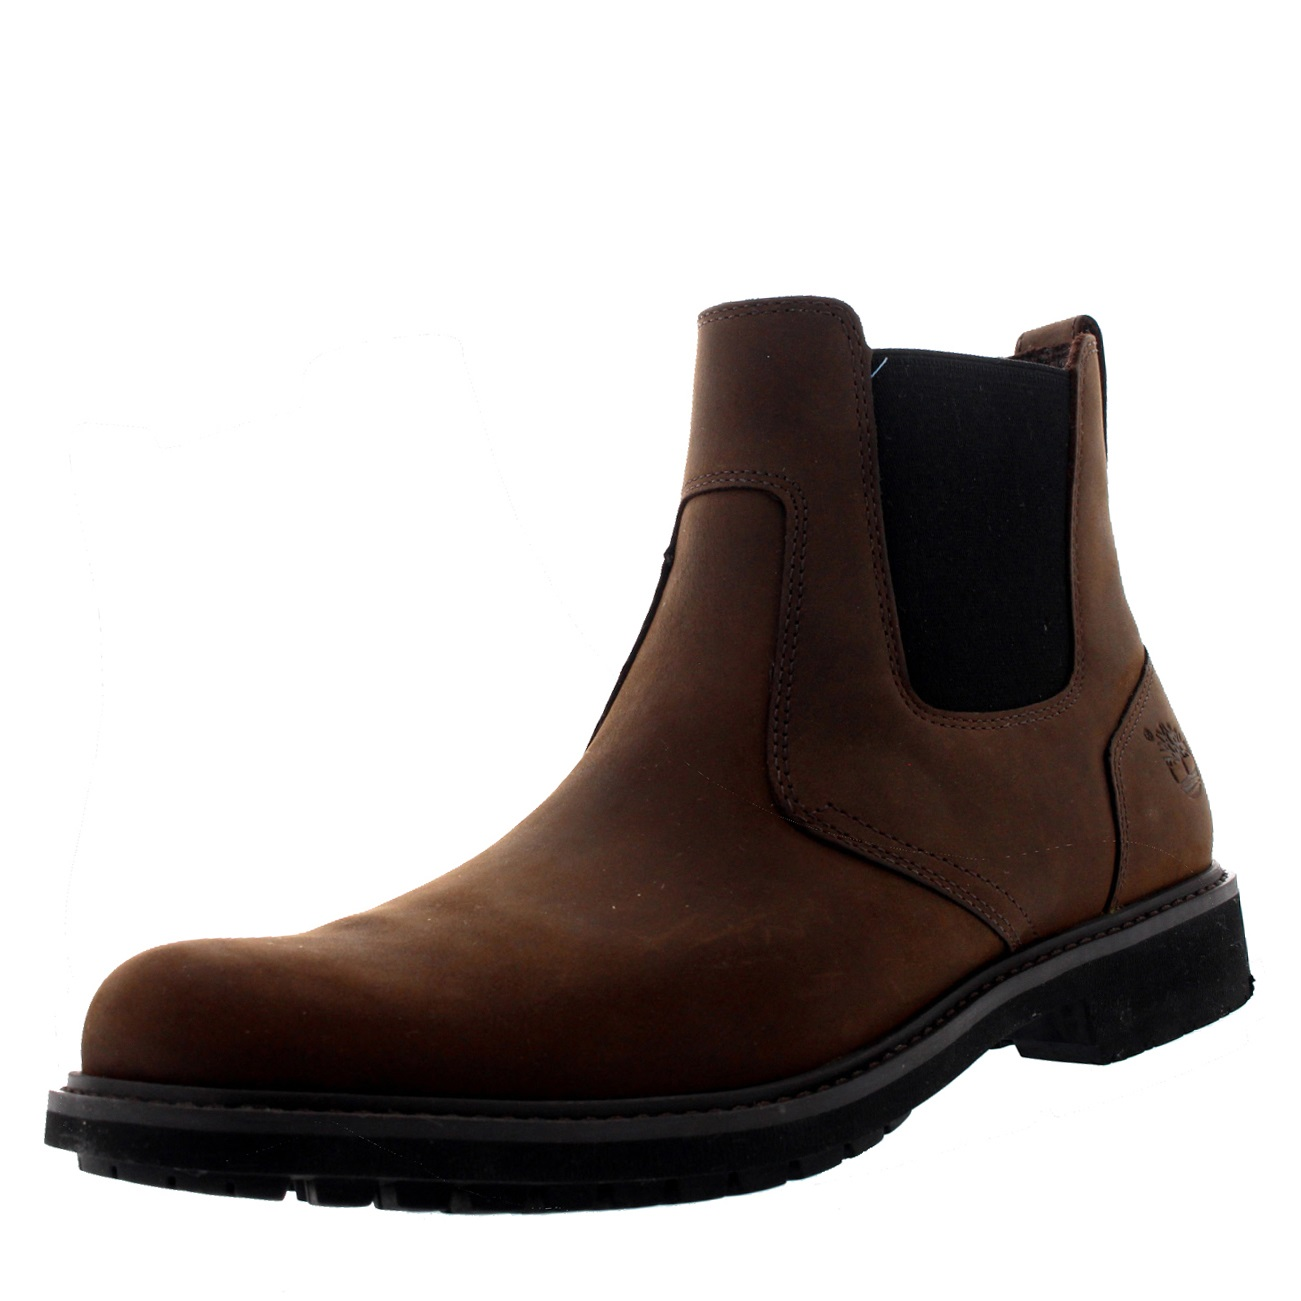 Product Features Leather Upper Pull-On Tab For Slipping On and Off Slip-On Dealer Boot.